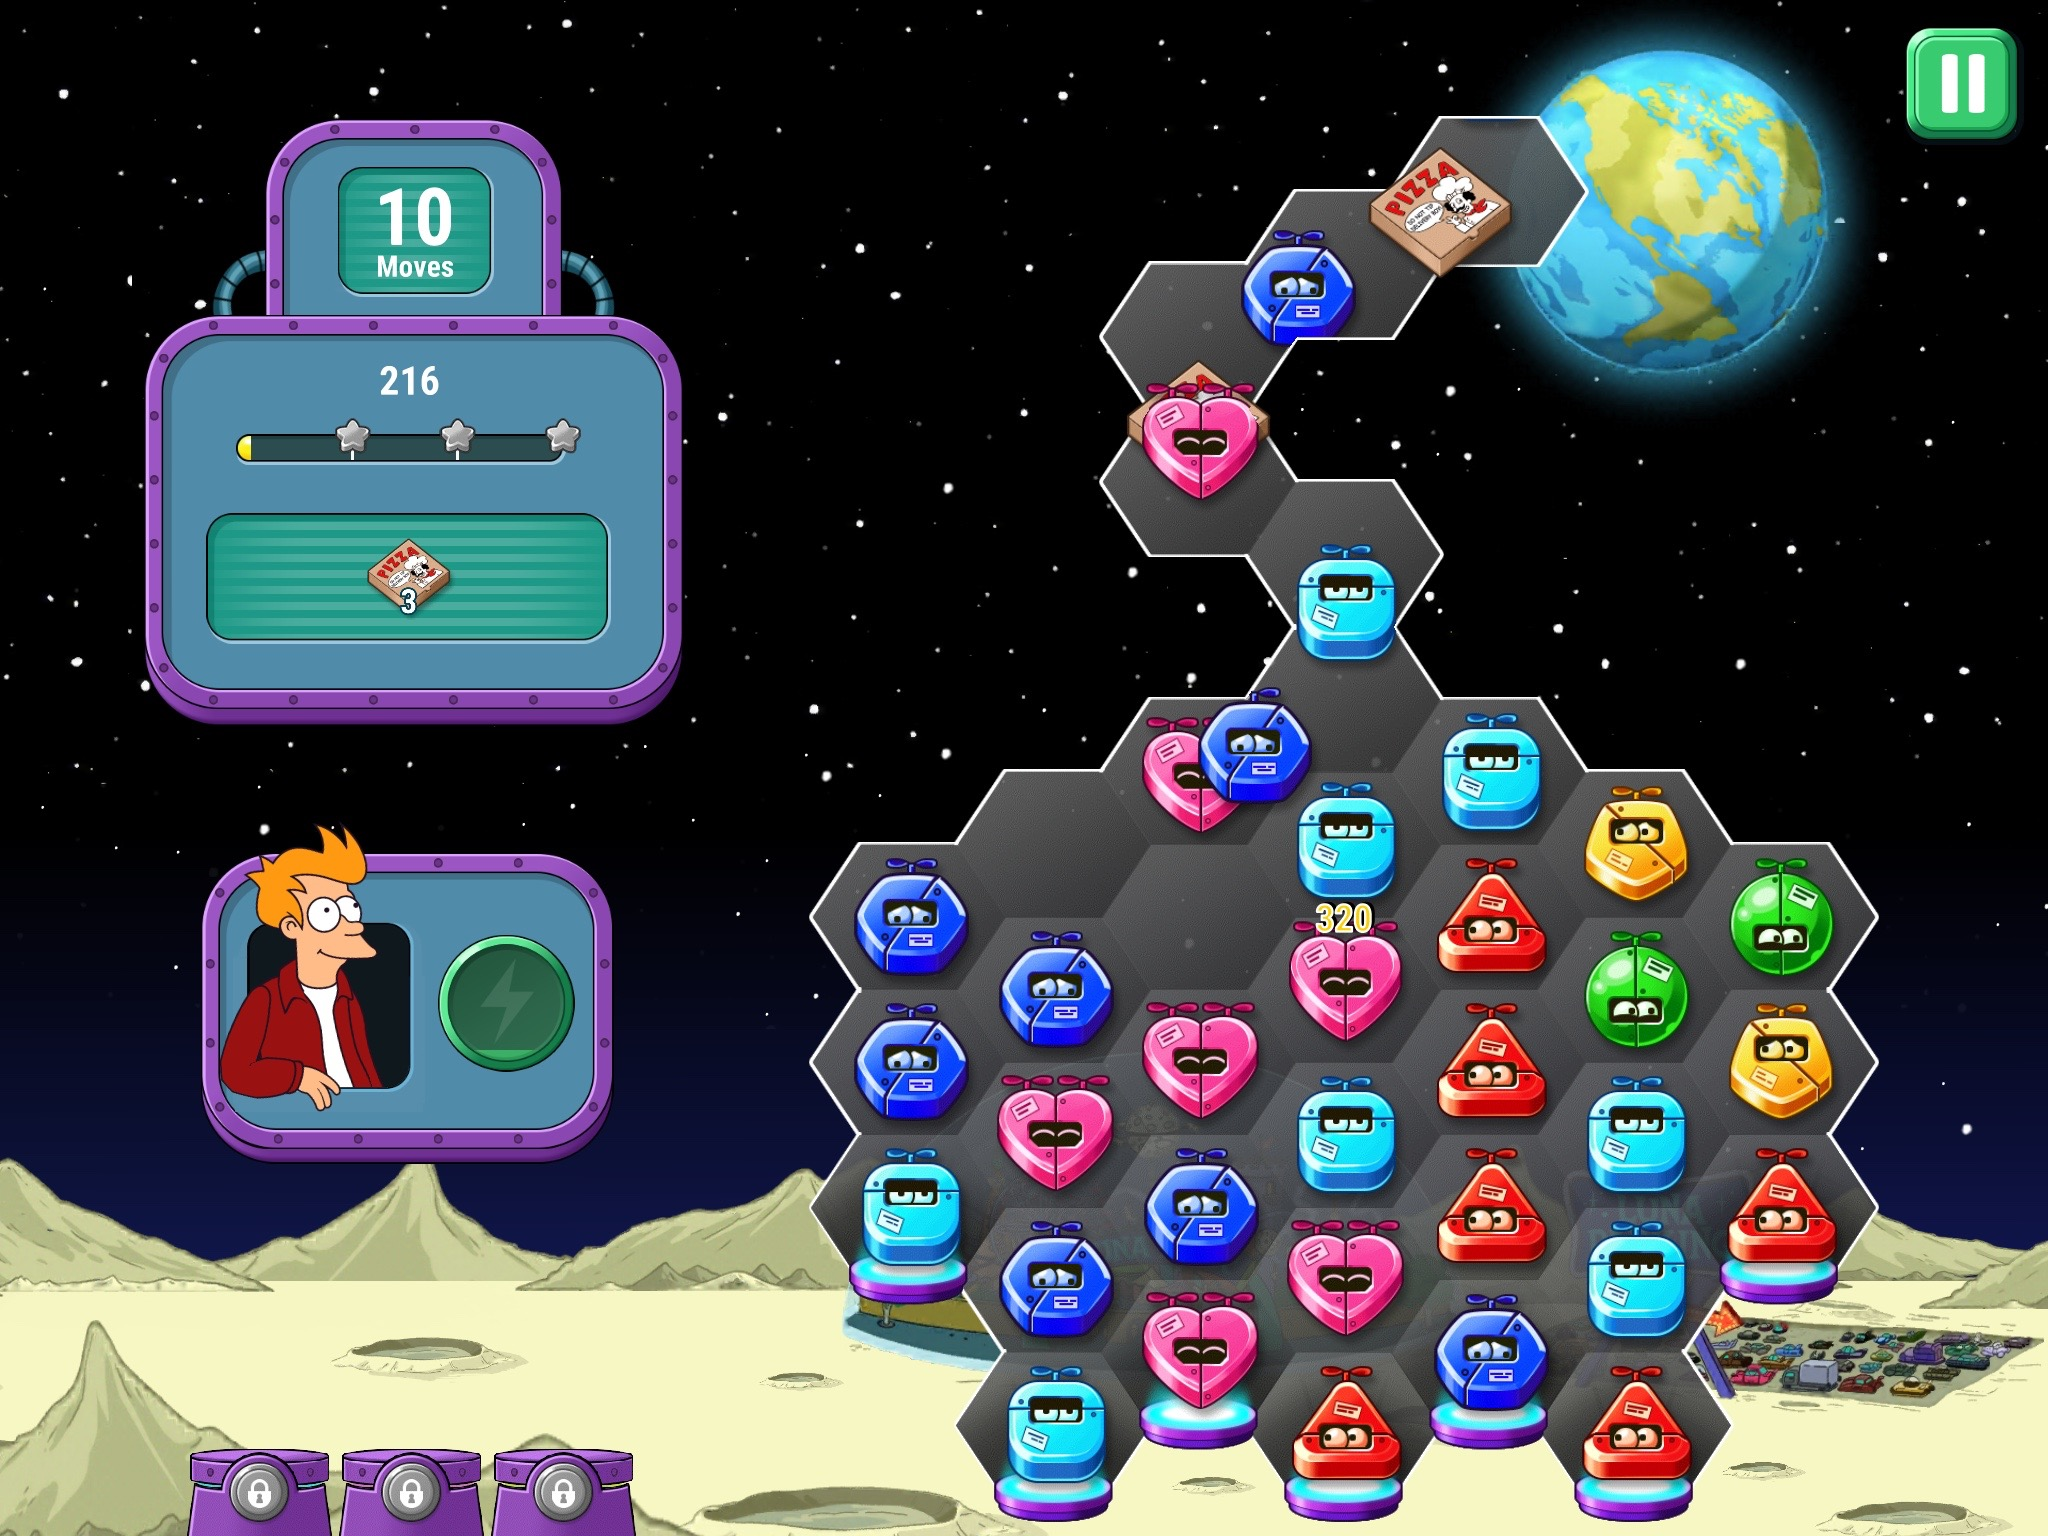 Futurama: Game of Drones - A decent match four puzzler and a great Futurama episode